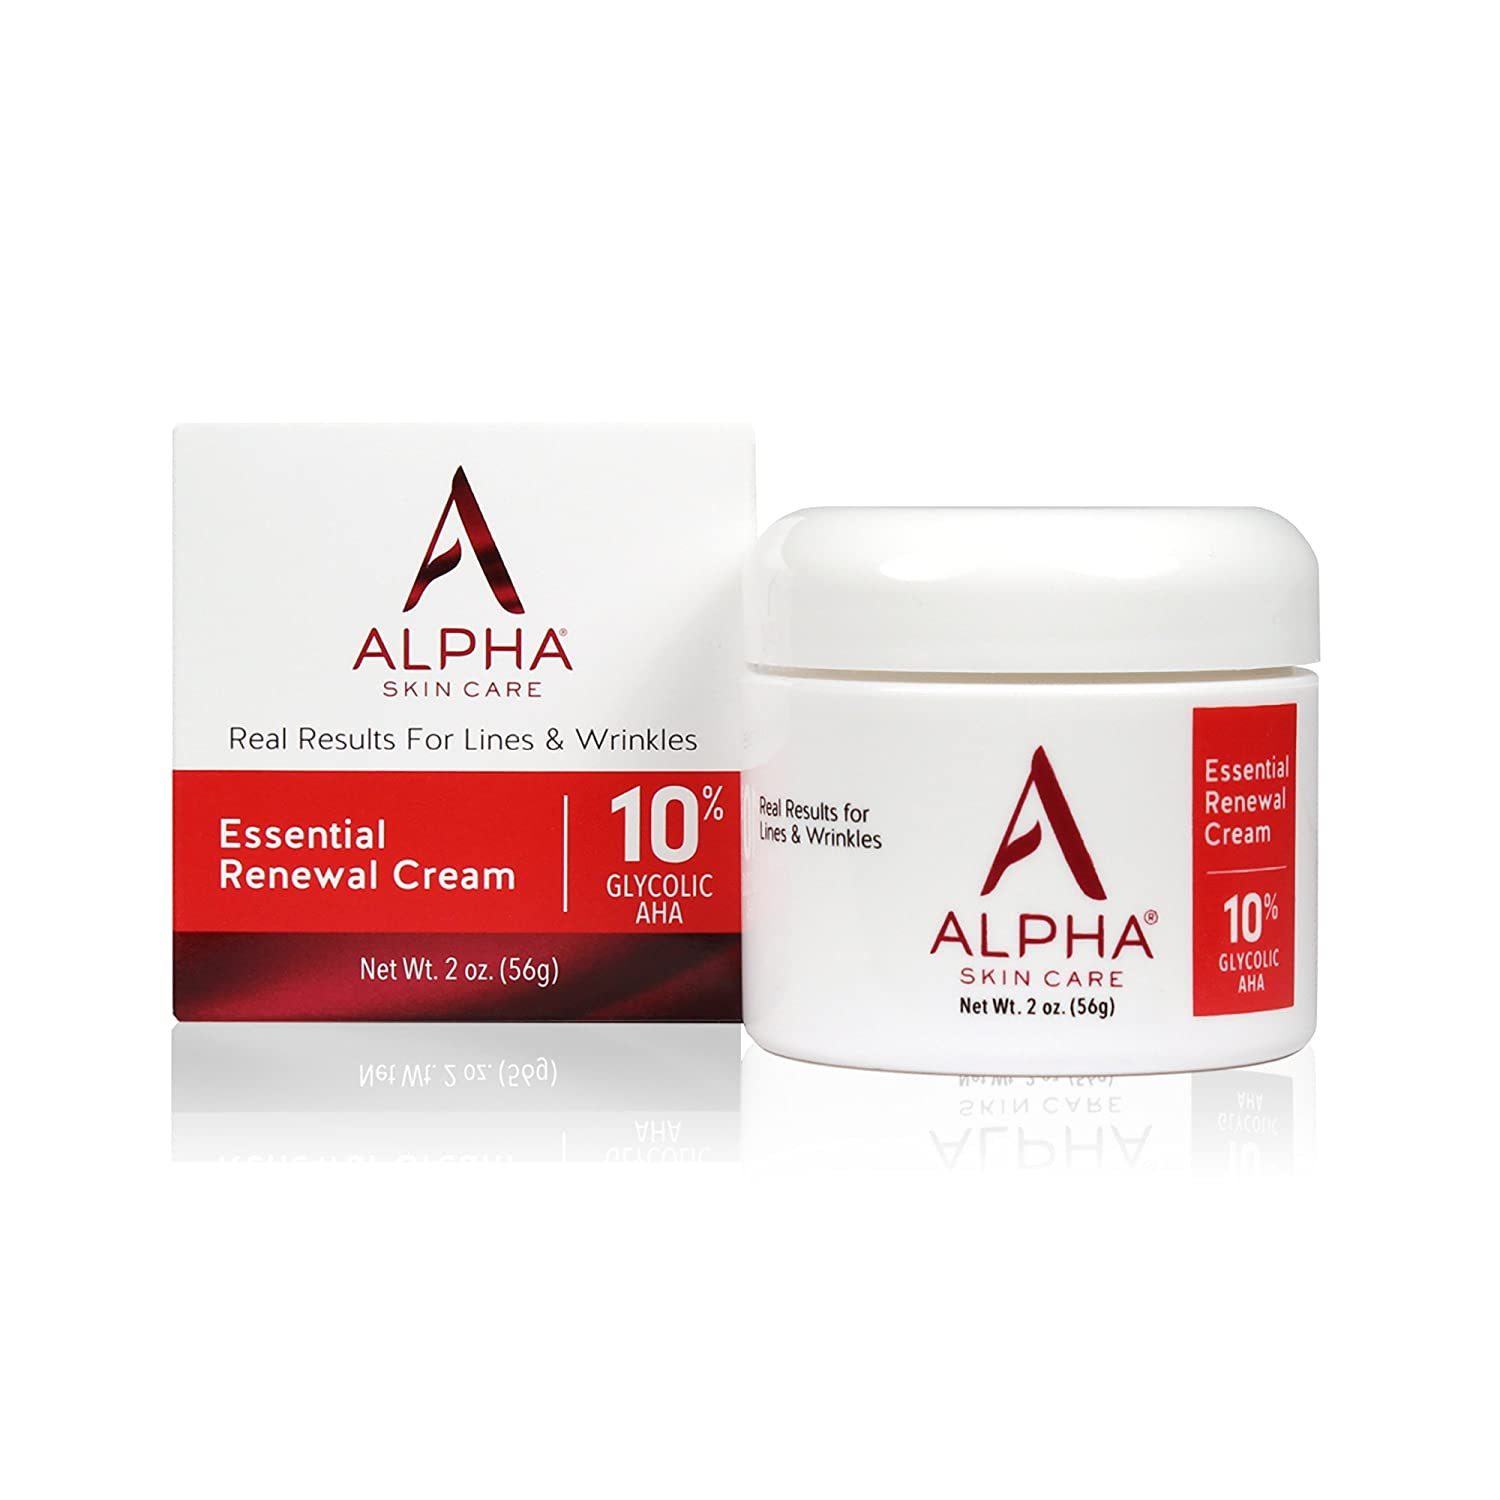 Alpha Skin Care Essential Renewal Cream | Anti-Aging Formula | 10% Glycolic Alpha Hydroxy Acid (AHA) | Reduces the Appearance of Lines & Wrinkles | For Normal to Dry Skin | 2 Oz